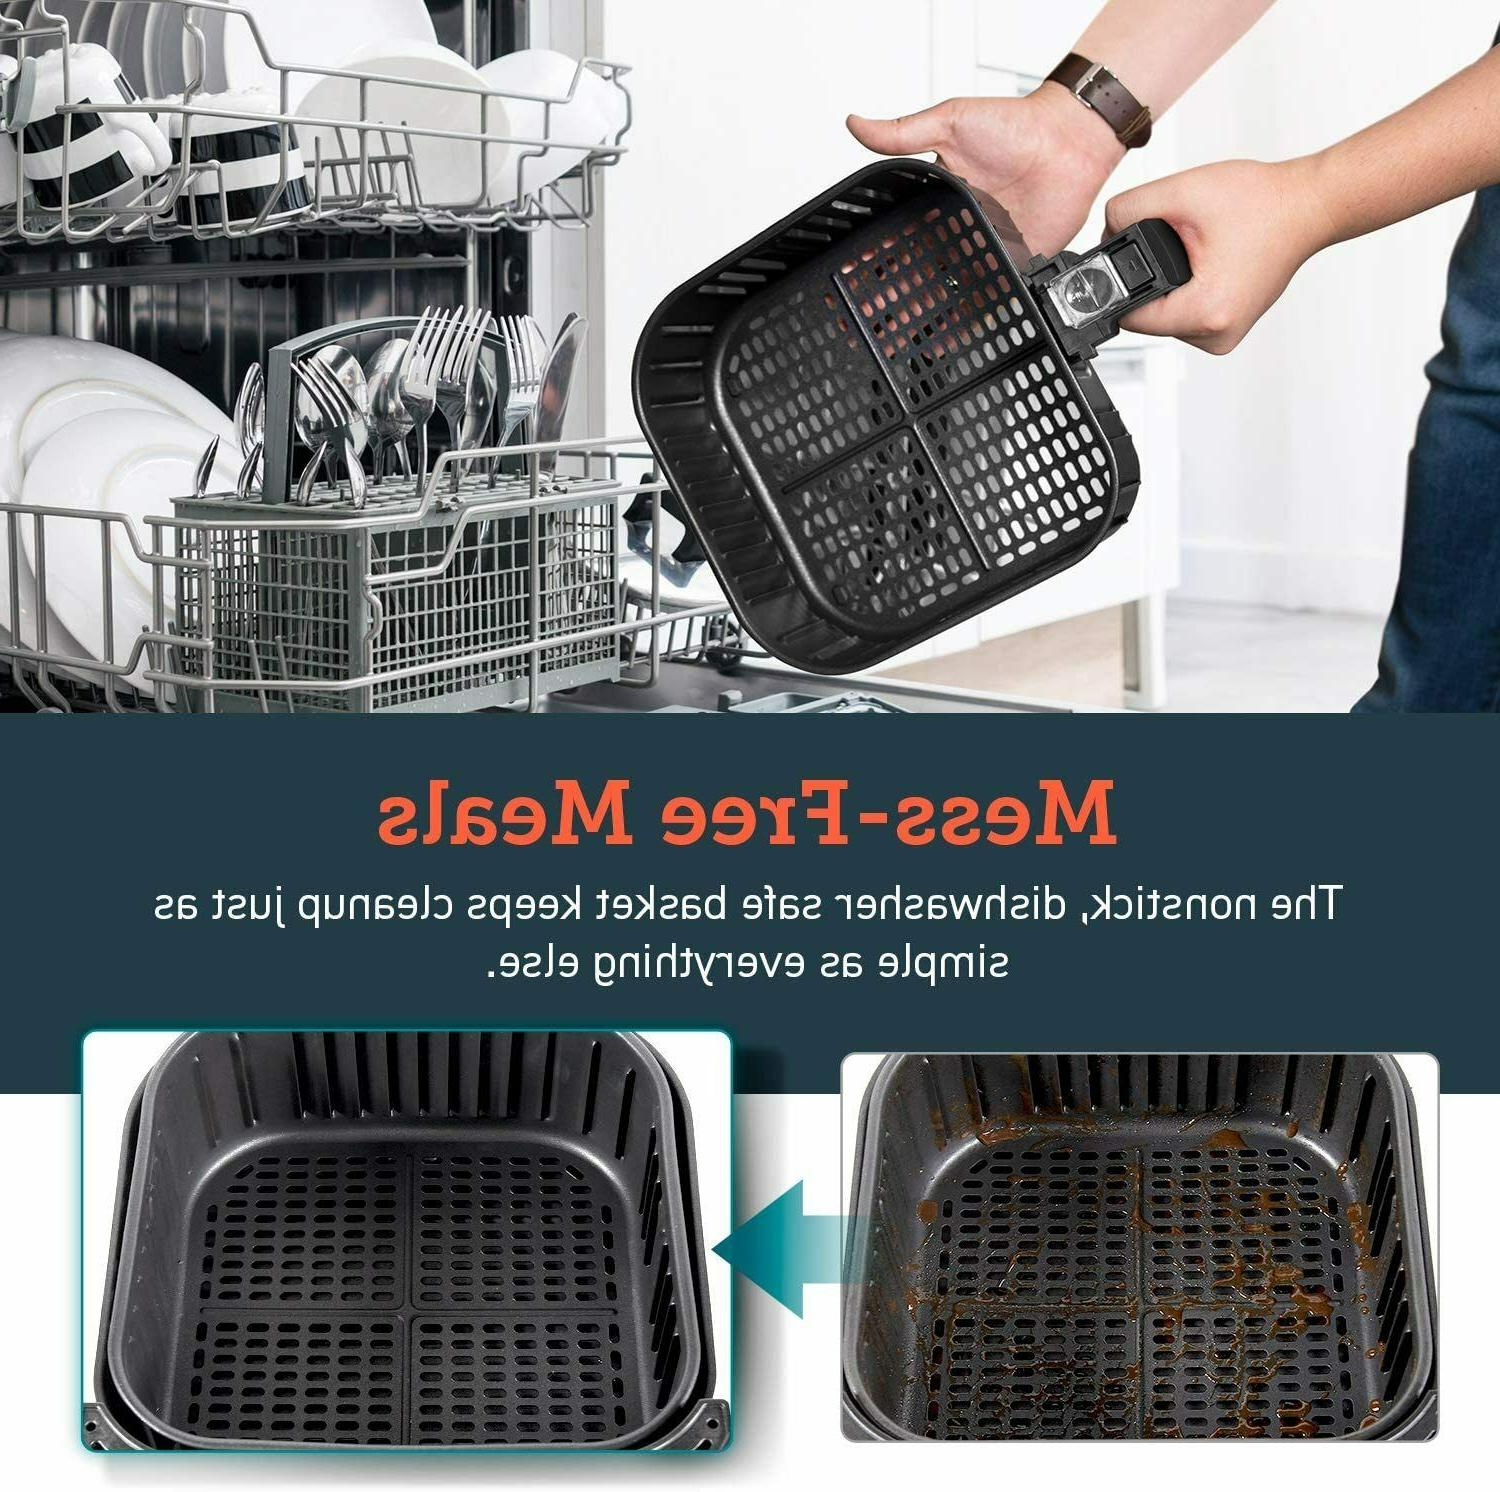 COSORI 3.7 Fryer Oilless 1500W 2 Yr